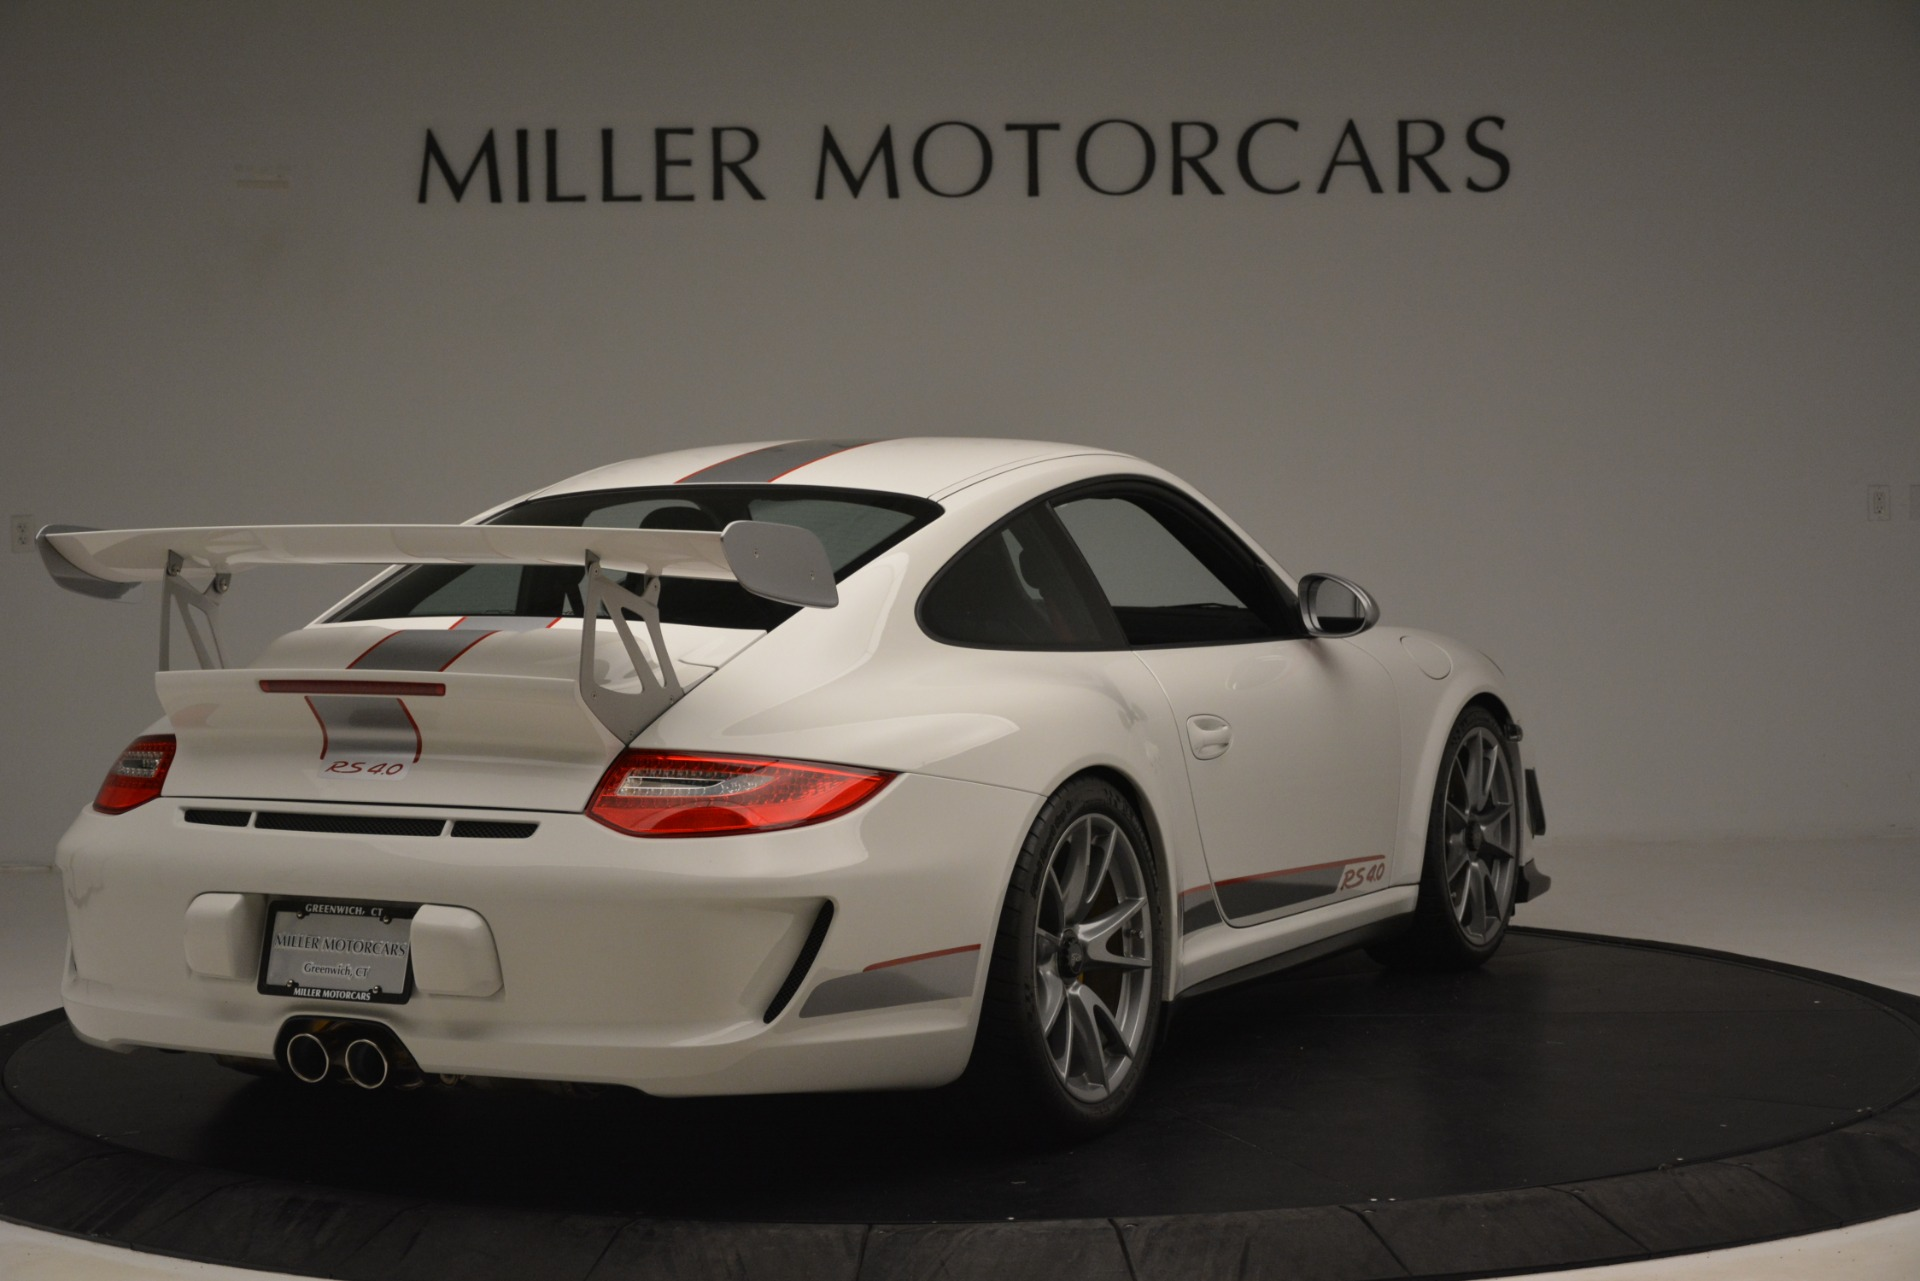 Used 2011 Porsche 911 GT3 RS 4.0 For Sale In Westport, CT 3188_p8